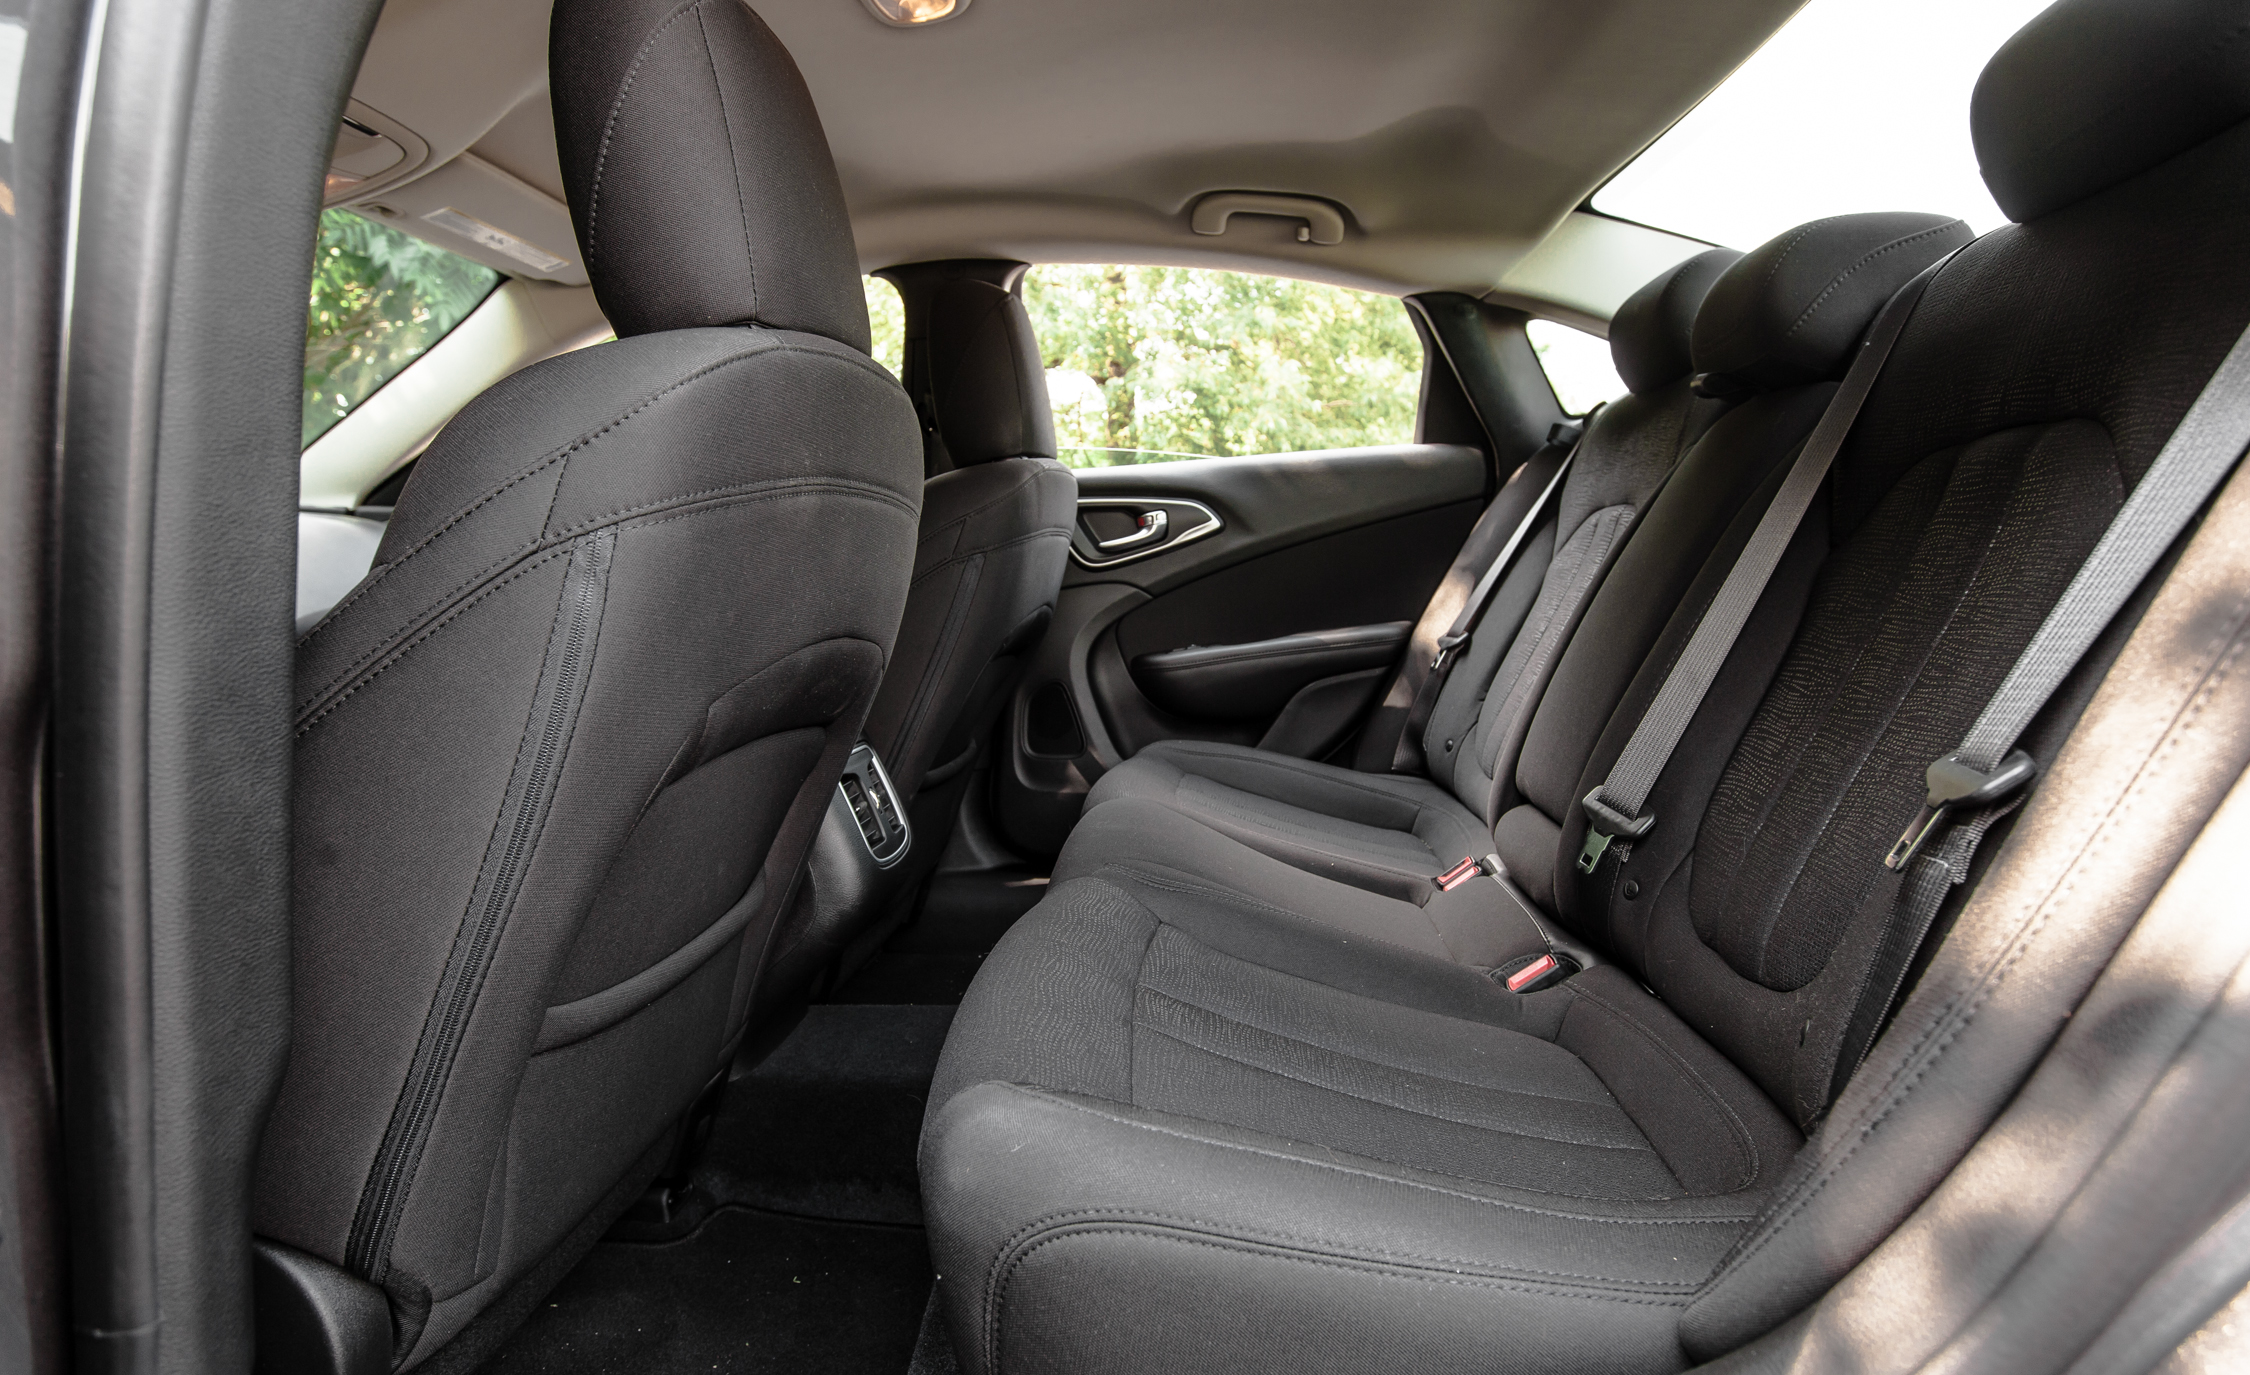 2015 Chrysler 200 Limited Interior (View 9 of 19)